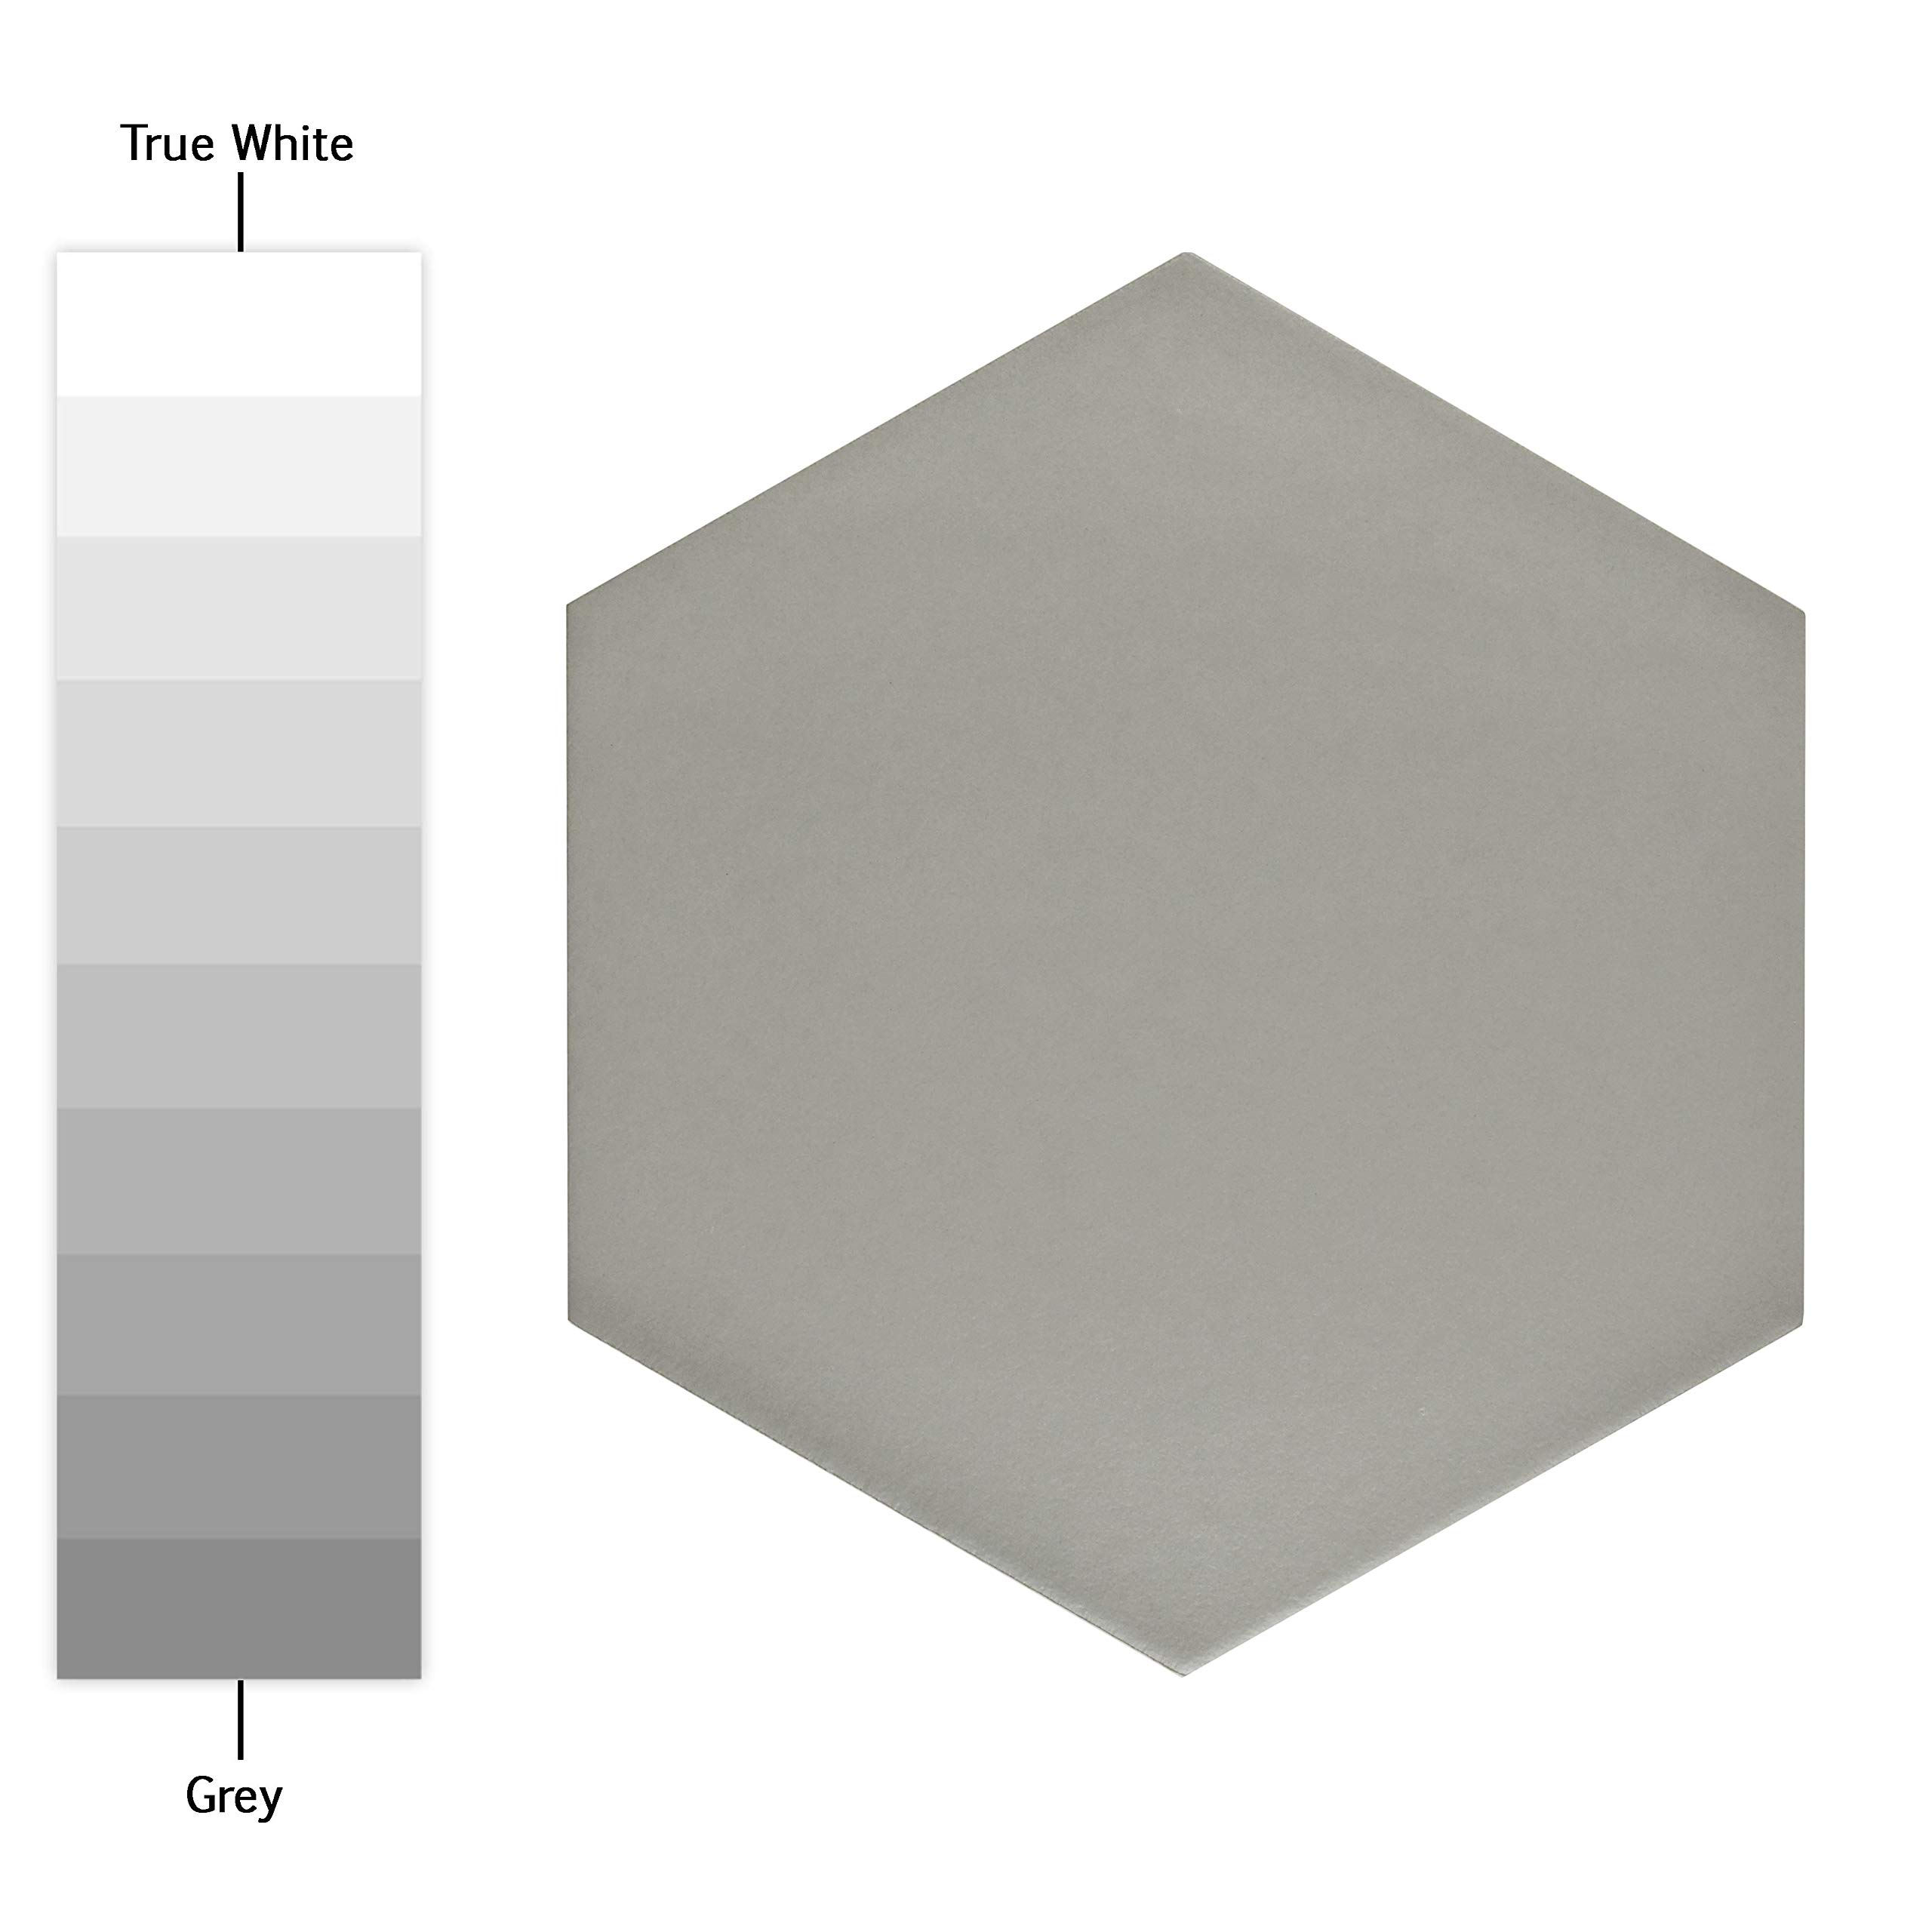 SomerTile FCD10STX Abrique Hex Porcelain Floor and Wall, 8.63'' x 9.88'', Silver Tile 8.625'' x 9.875'' 25 Piece by SOMERTILE (Image #2)